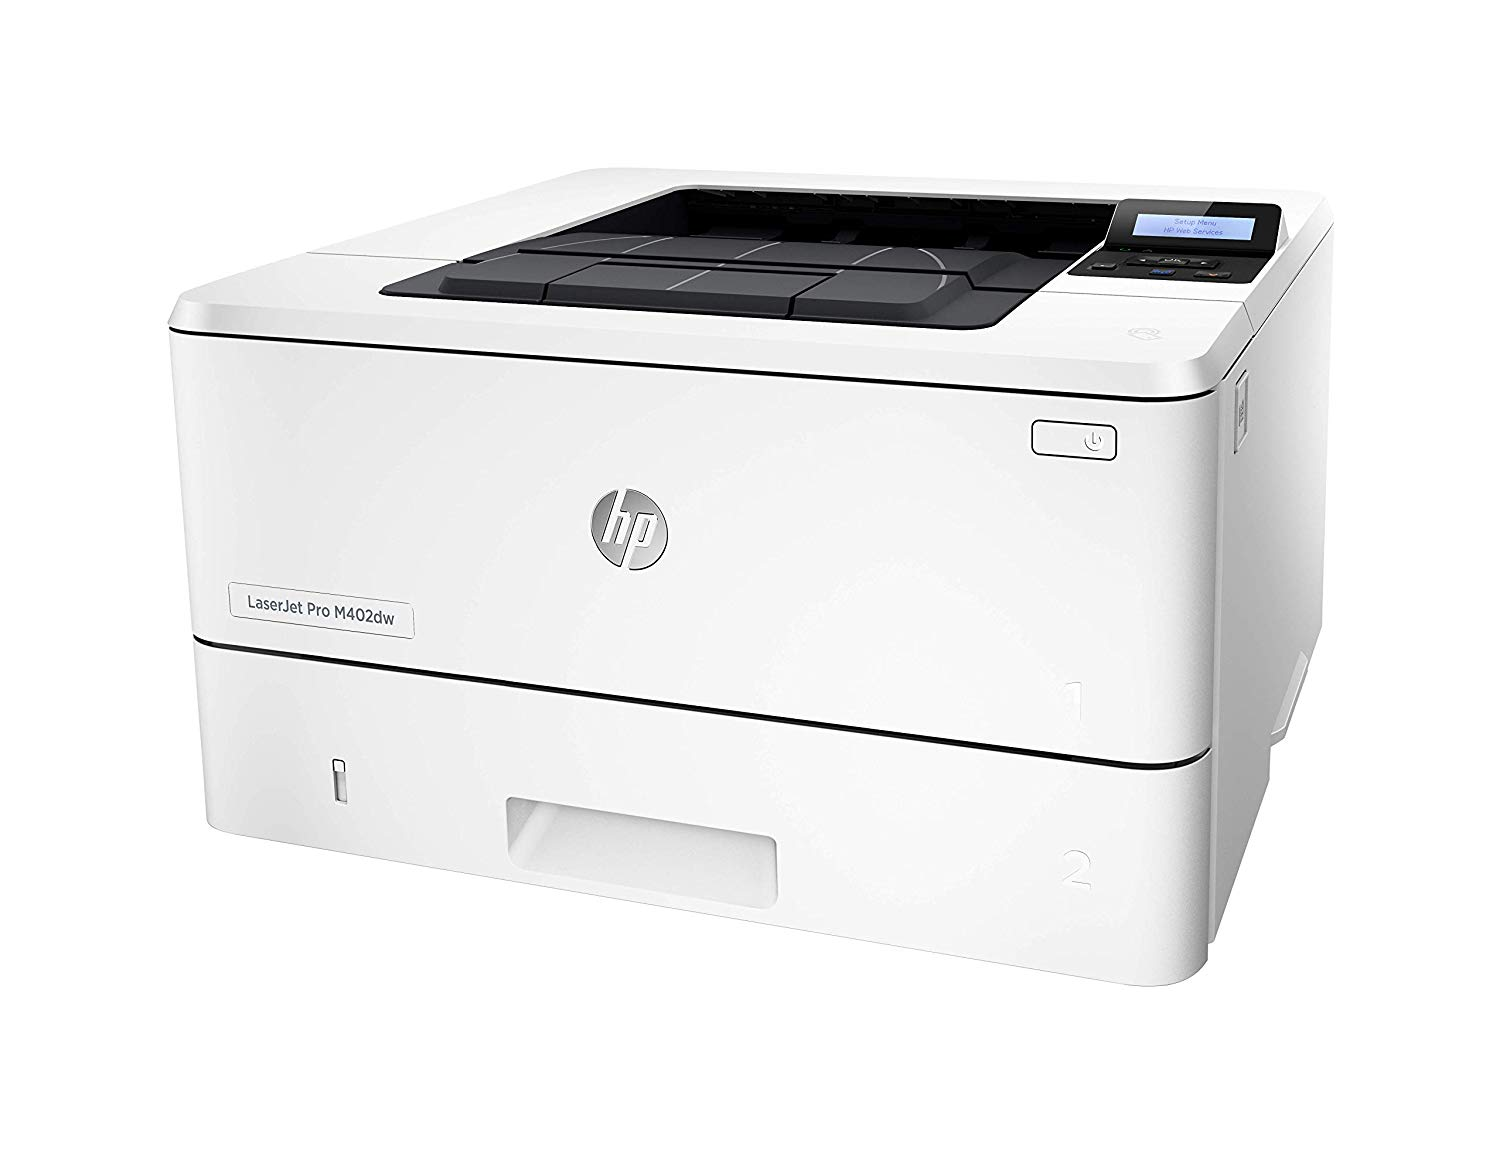 HP LaserJet Pro M402dw Wireless Monochrome Printer